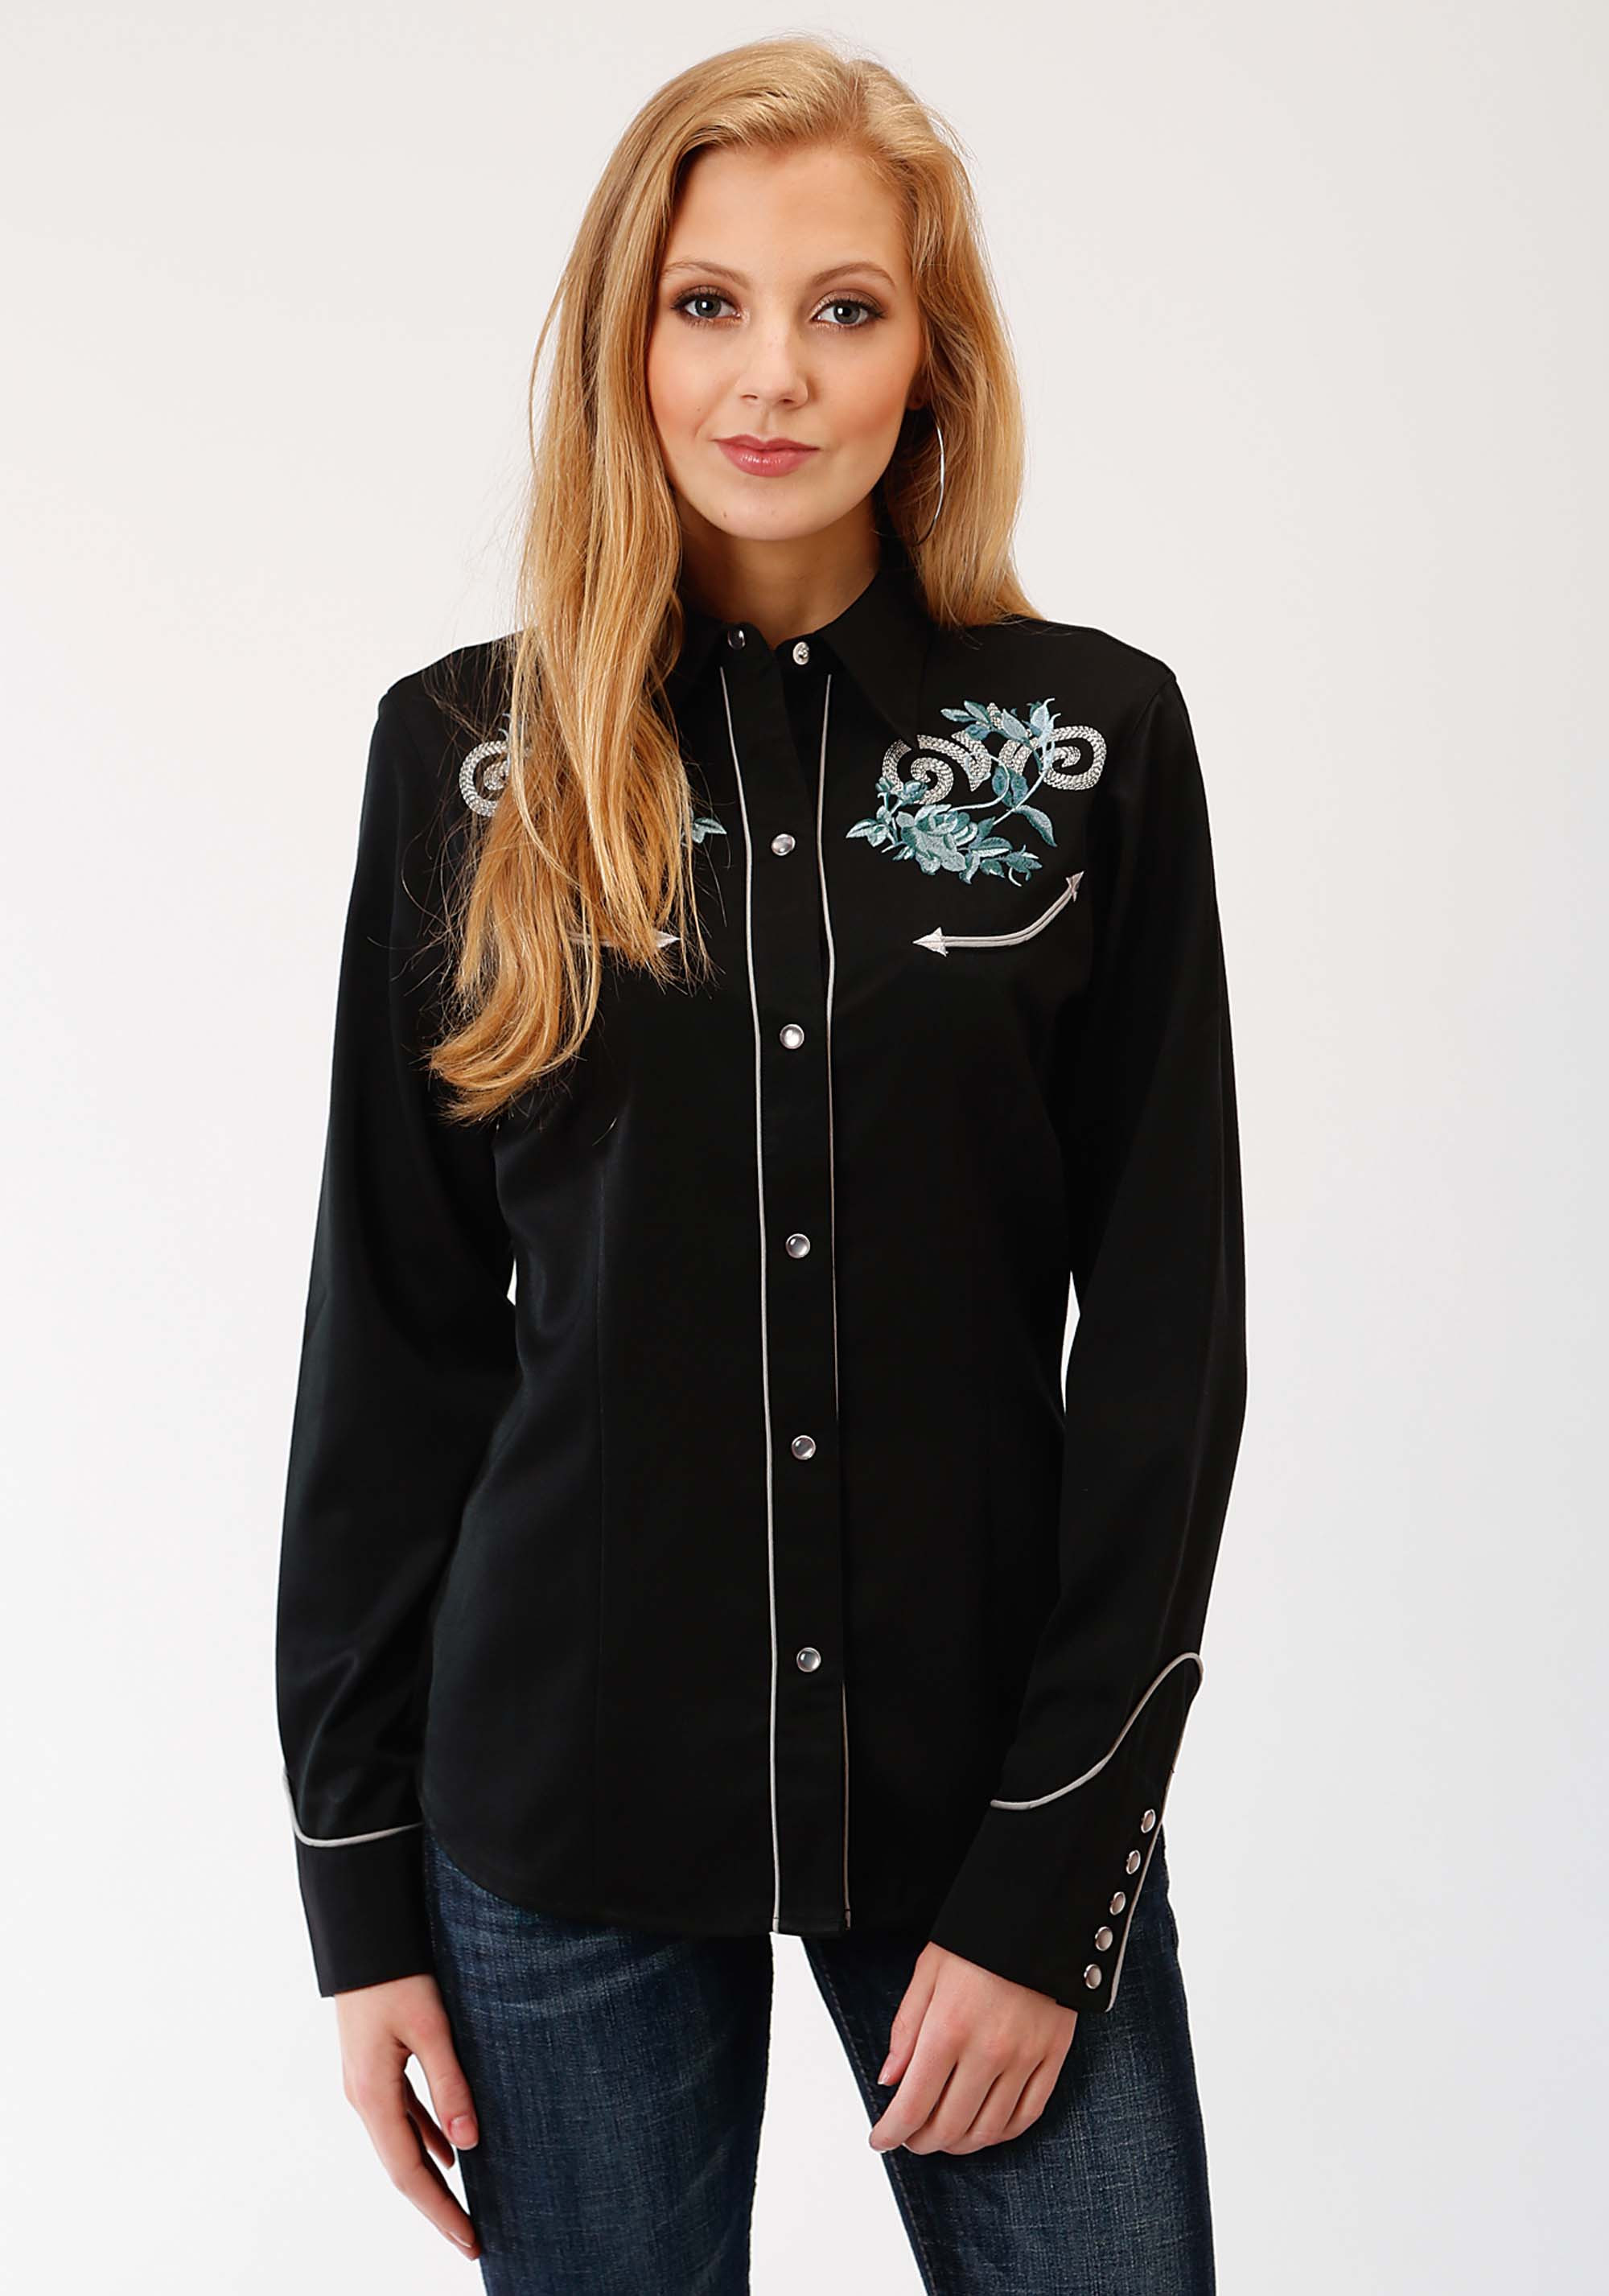 Embroidered Western Shirts for Women